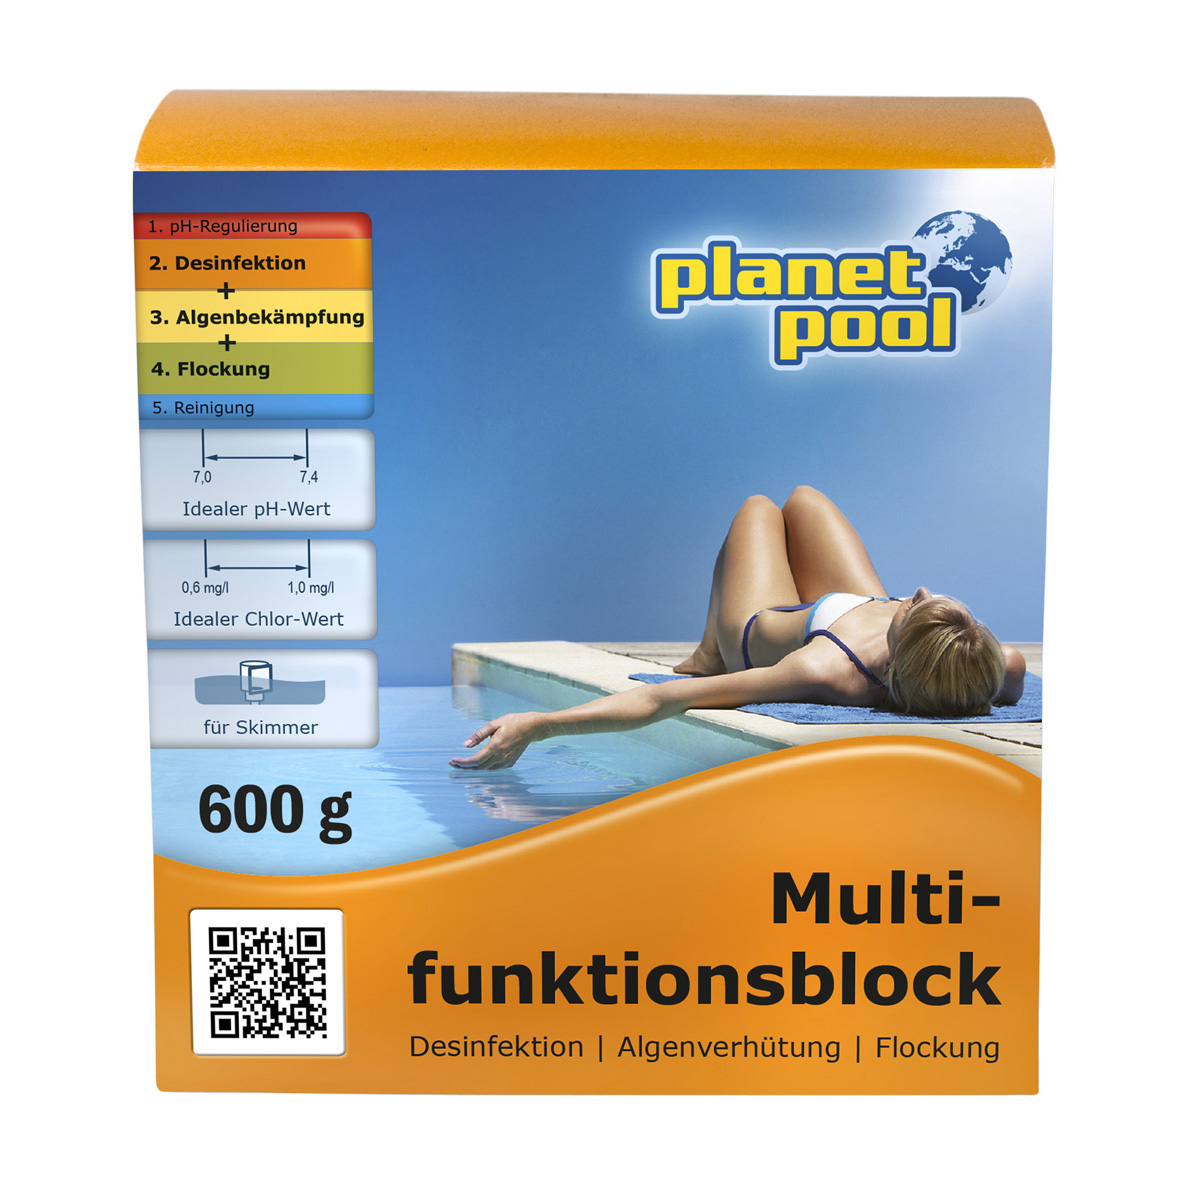 PLANET POOL Multifunktionsblock 600g